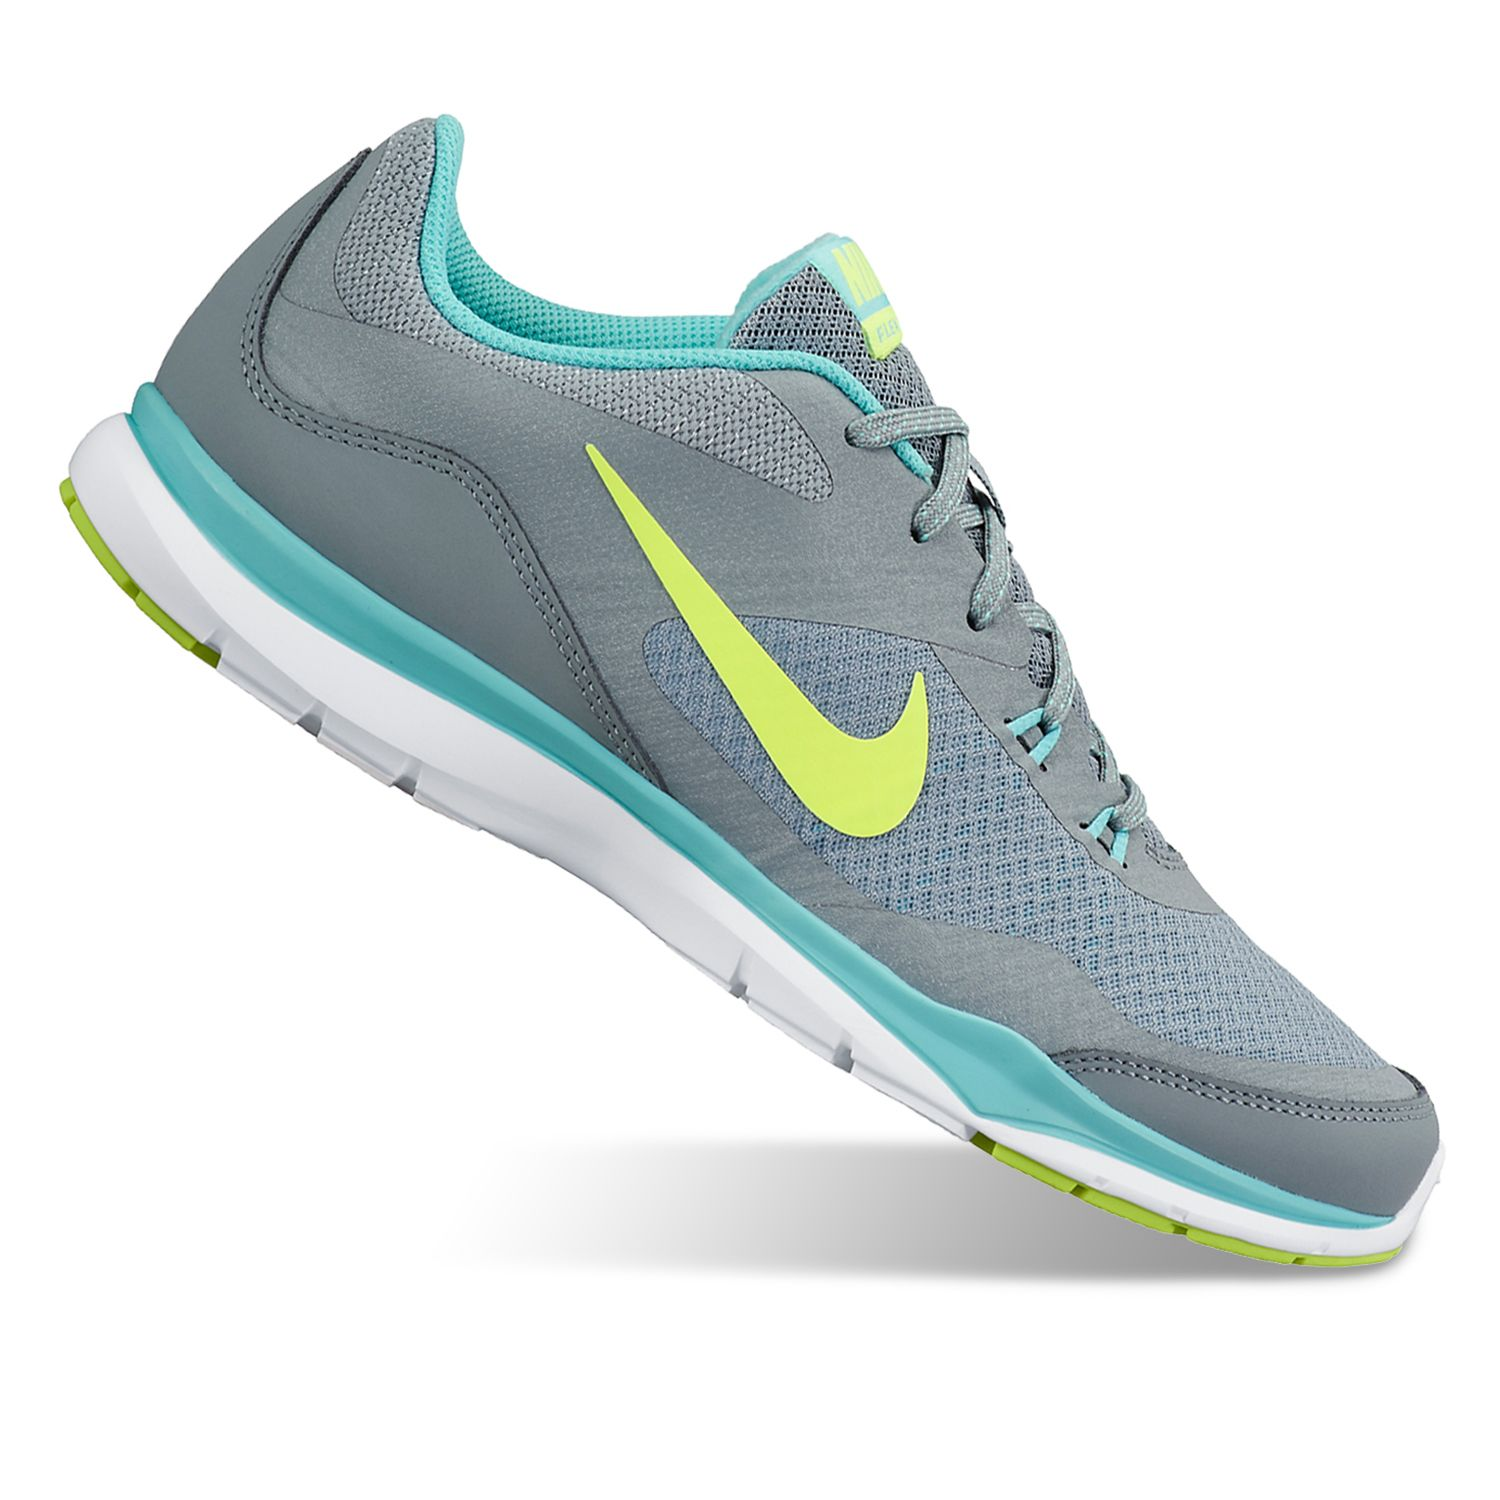 Nike Shoes For Women Casual With Price